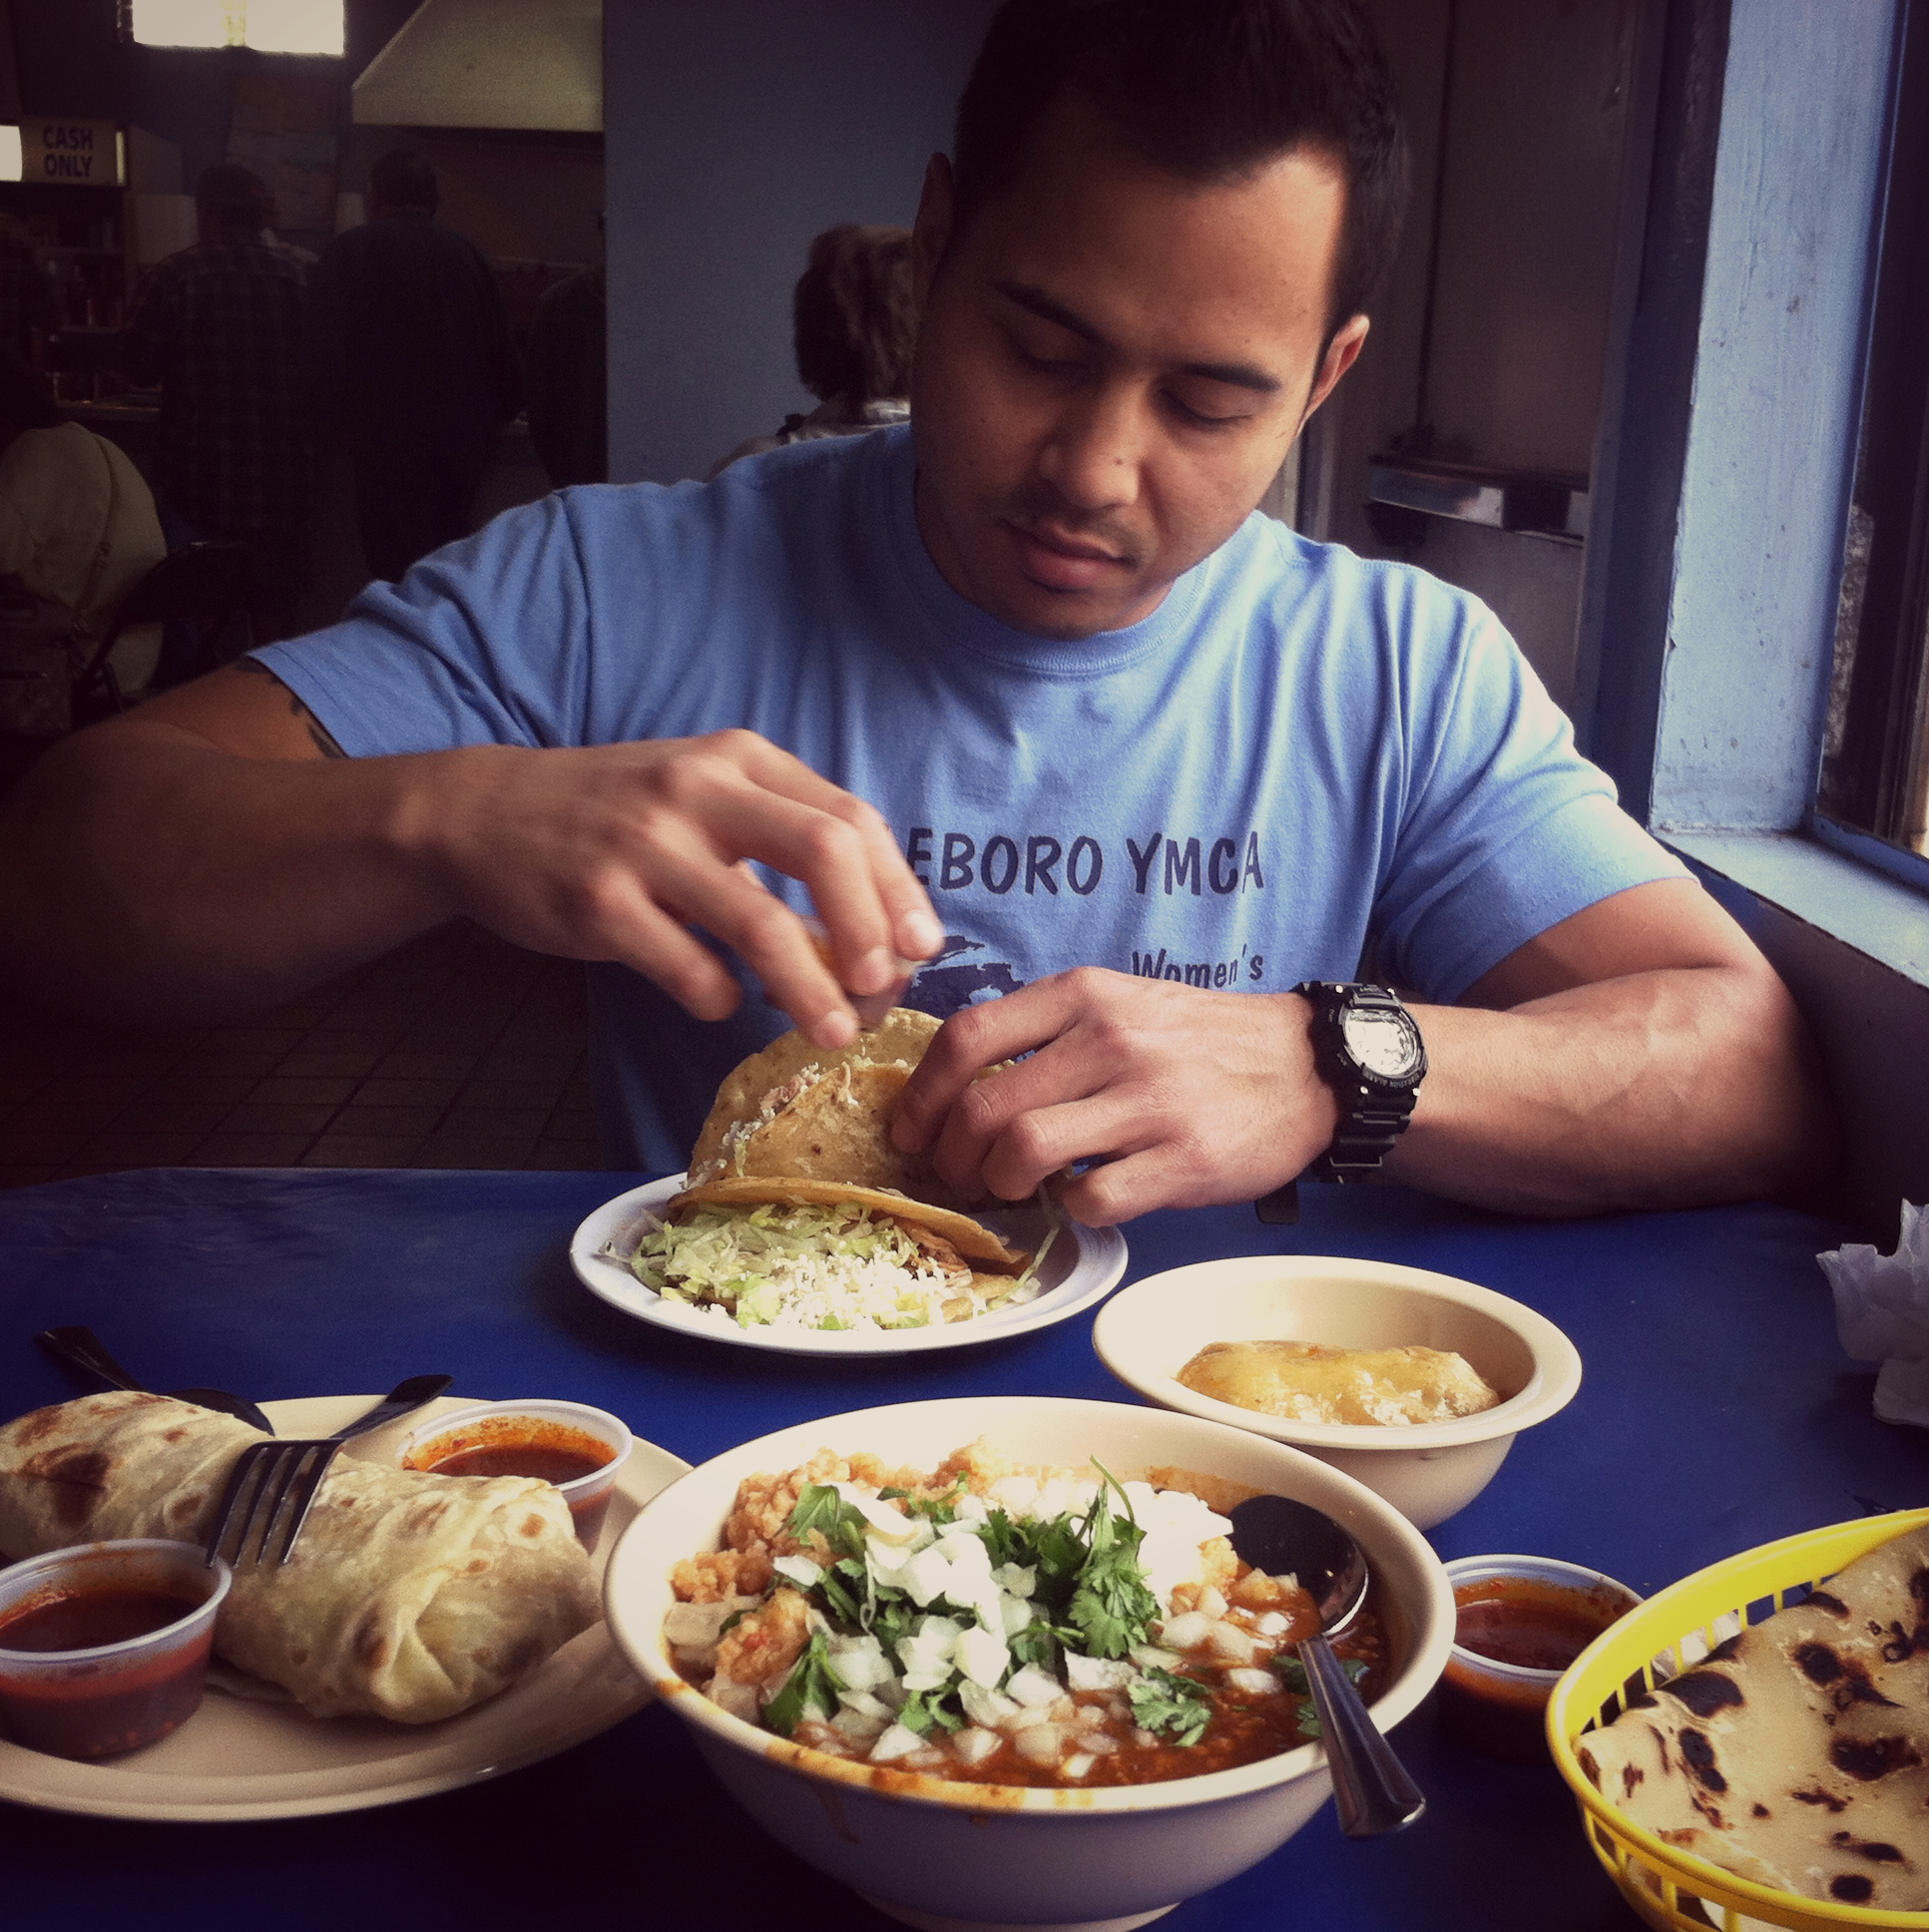 Saturday lunch at Las Cuatro Milpas in Logan Heights, San Diego. The homemade tortillas - omg.